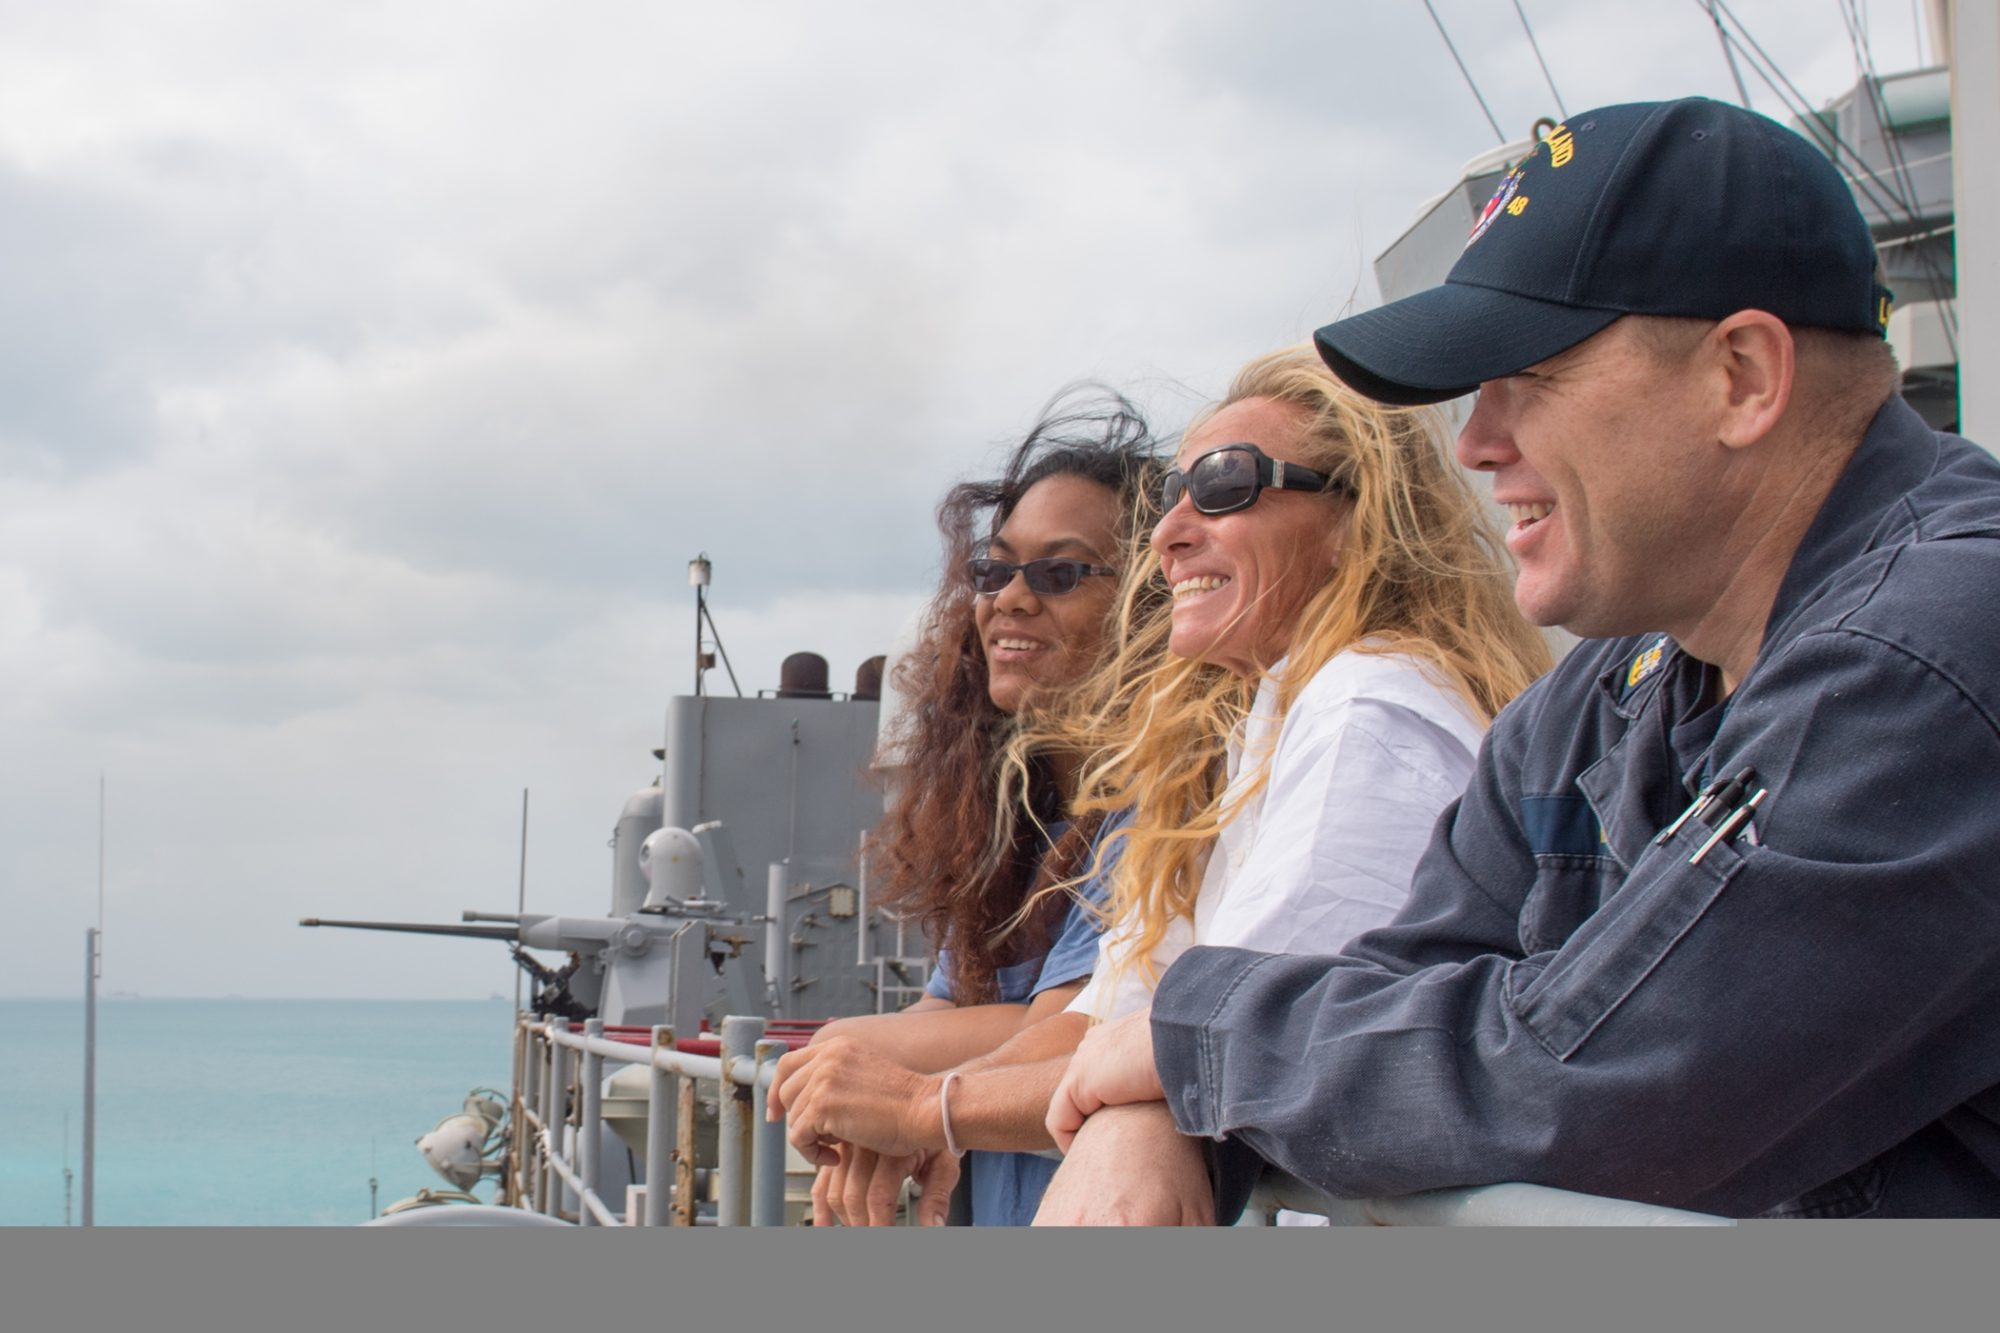 USS Ashland arrives in Okinawa with Mariners